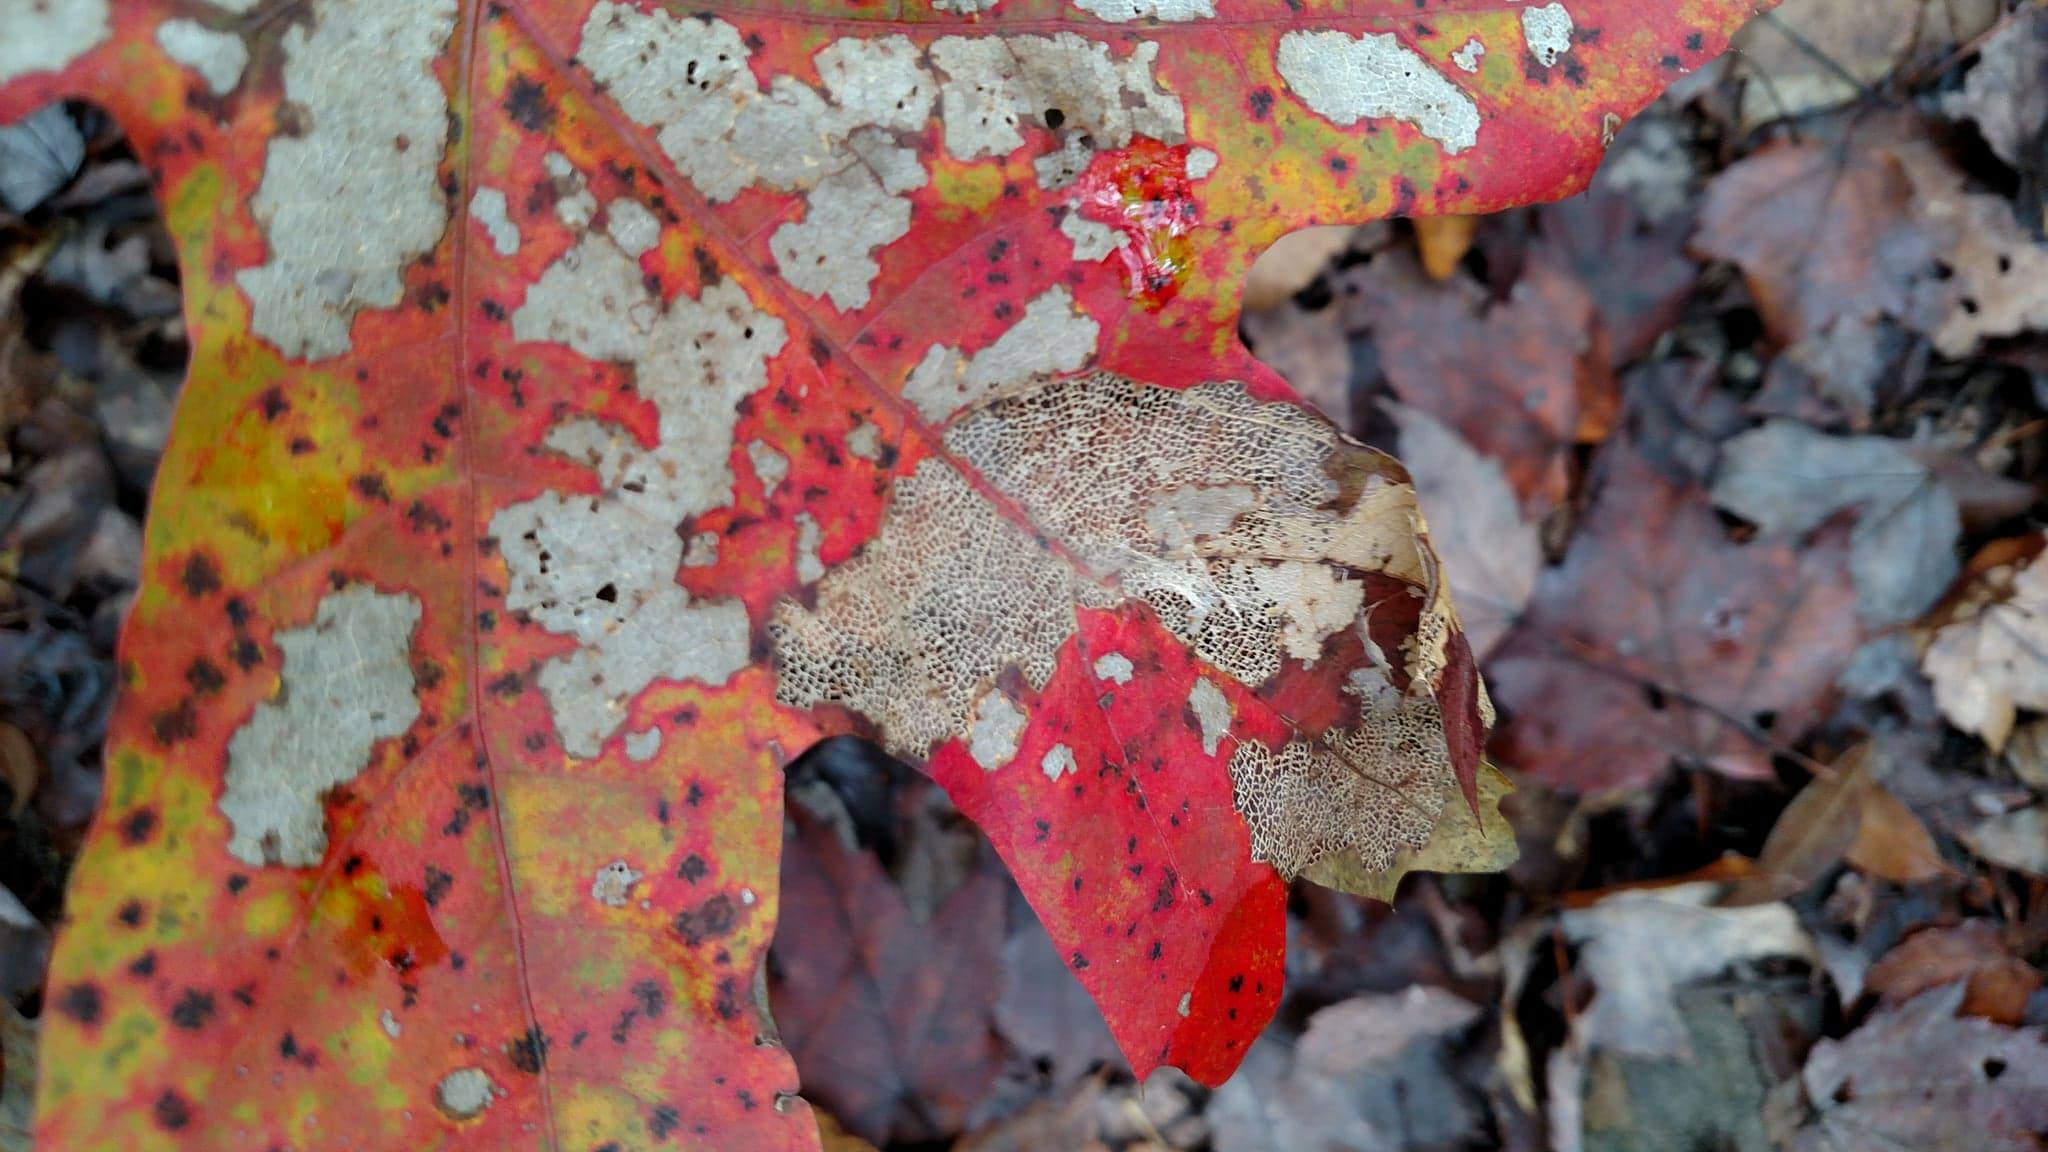 Lacy autumn leaf in Blanton Forest, Ky. Photo credit: Leah D. Schade. All rights reserved.